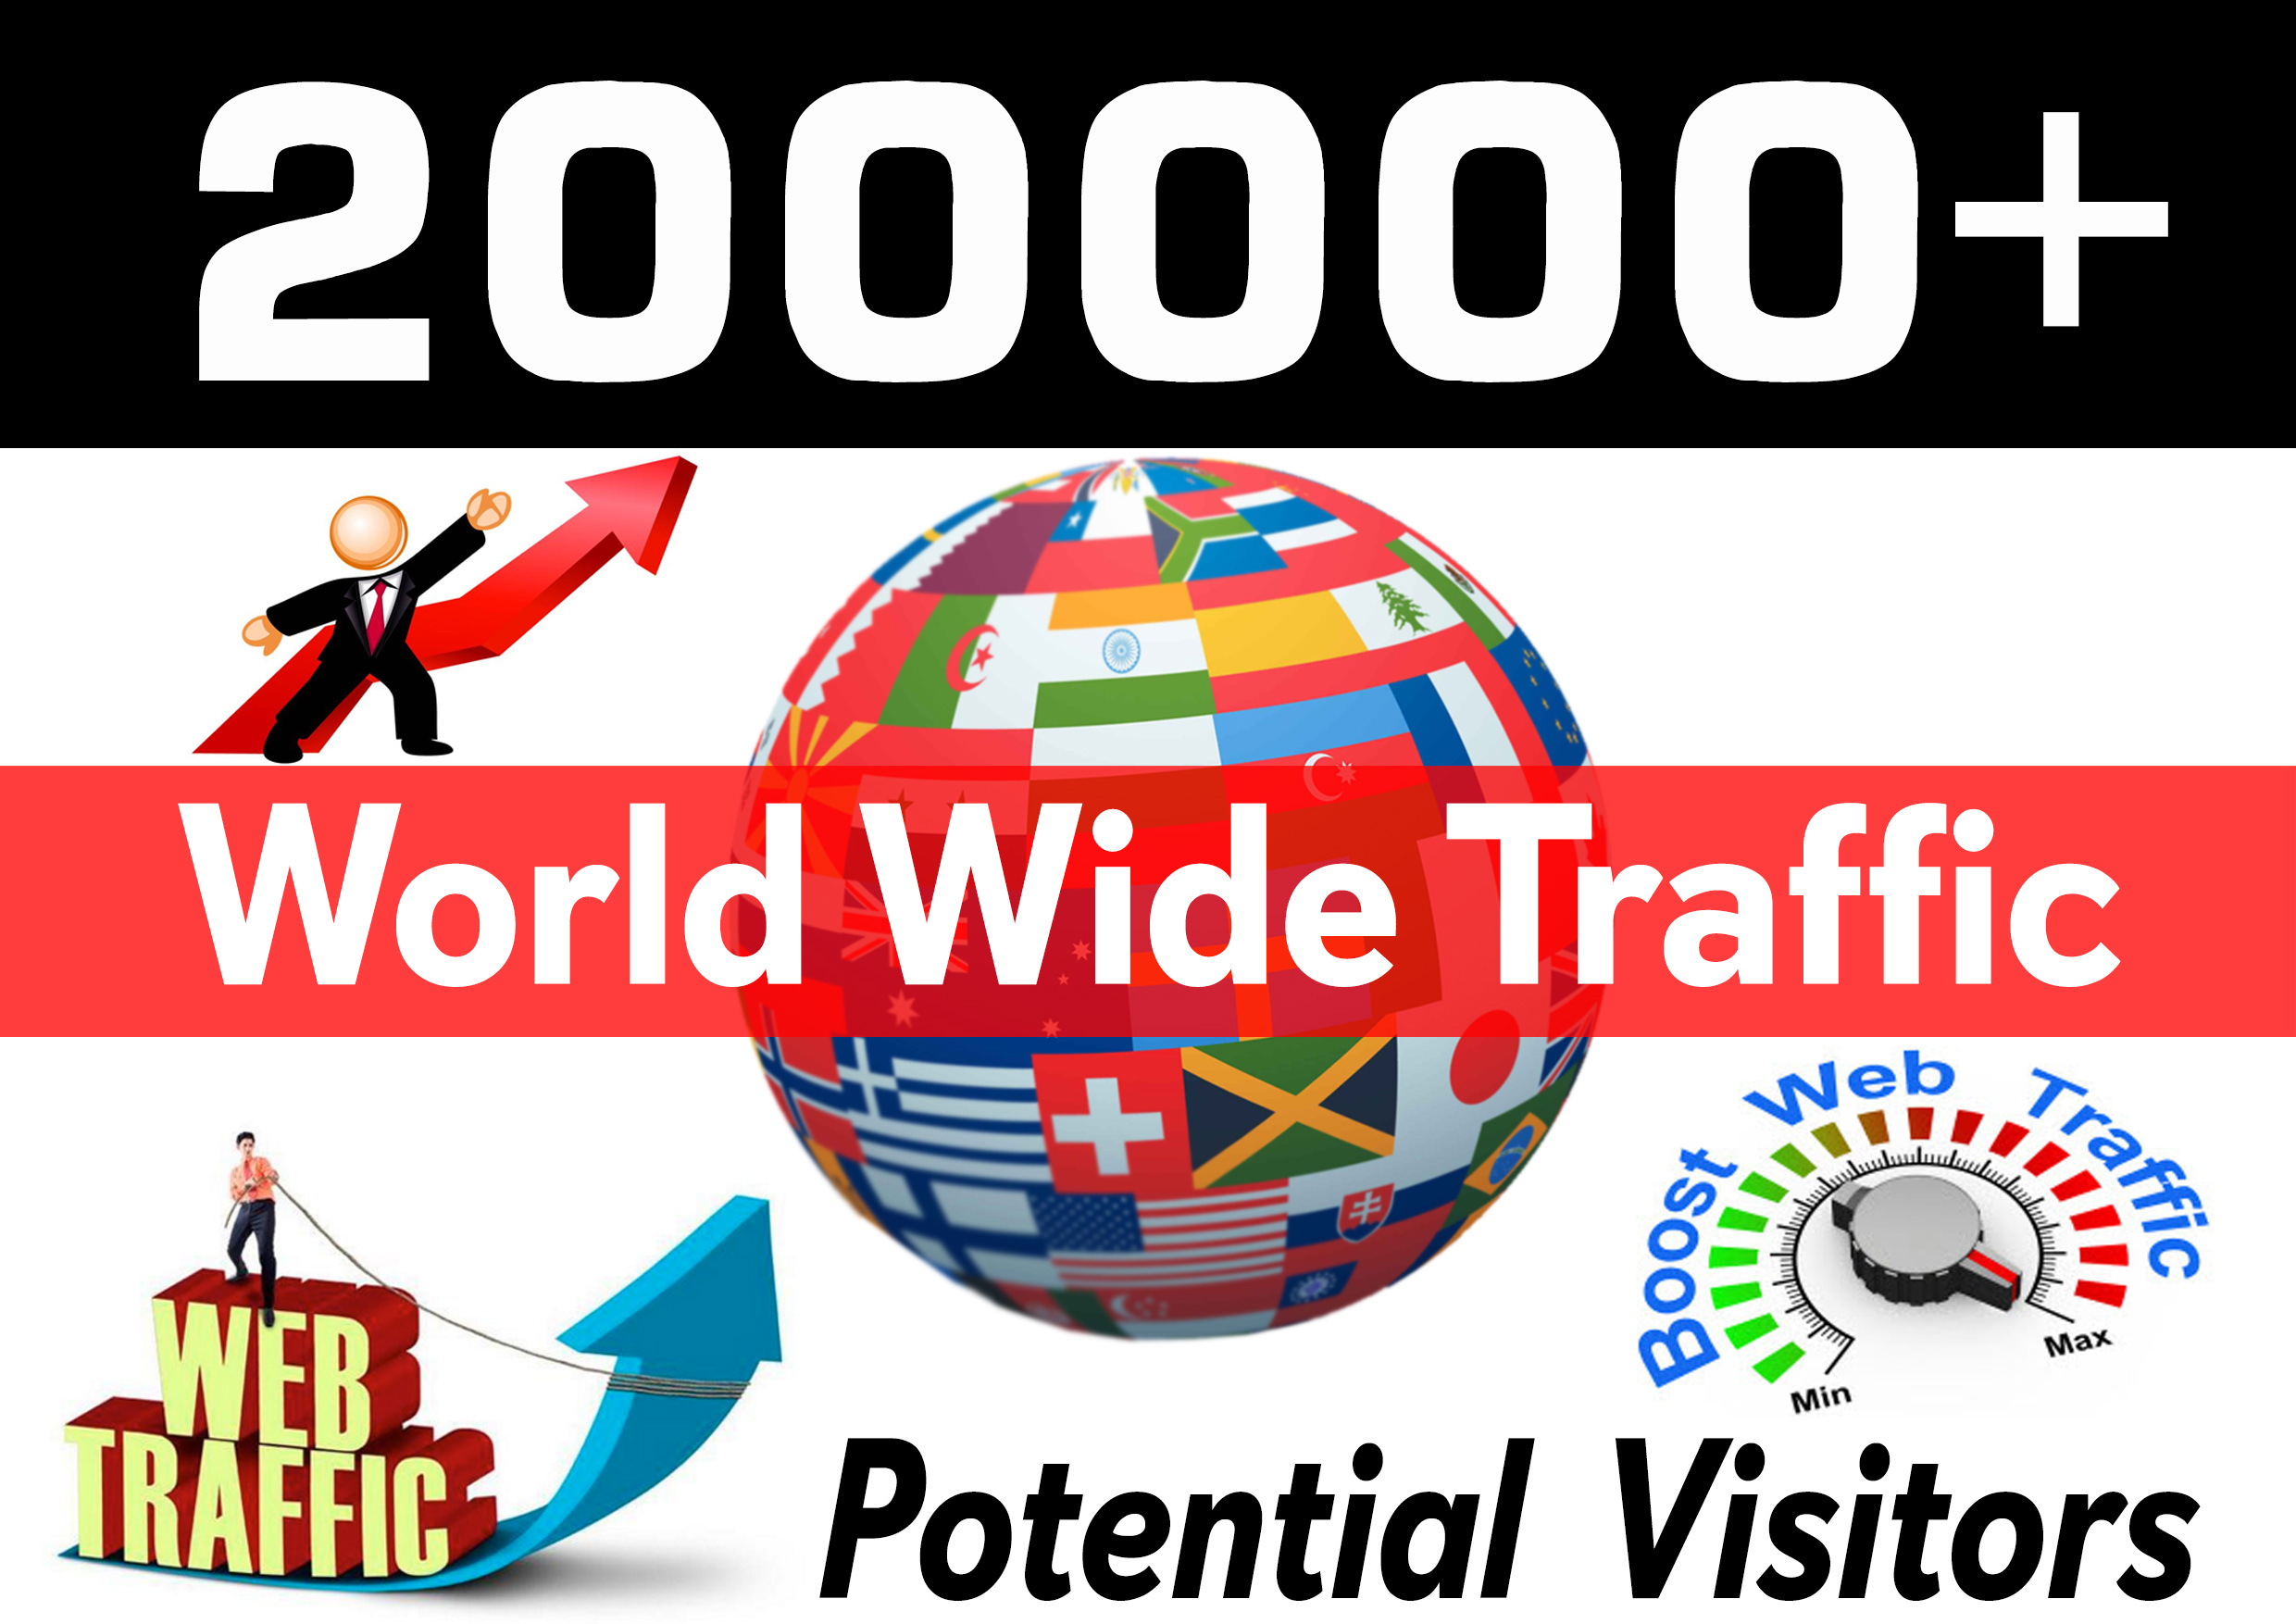 drive 200000+ Real Traffic to your Website or Blog